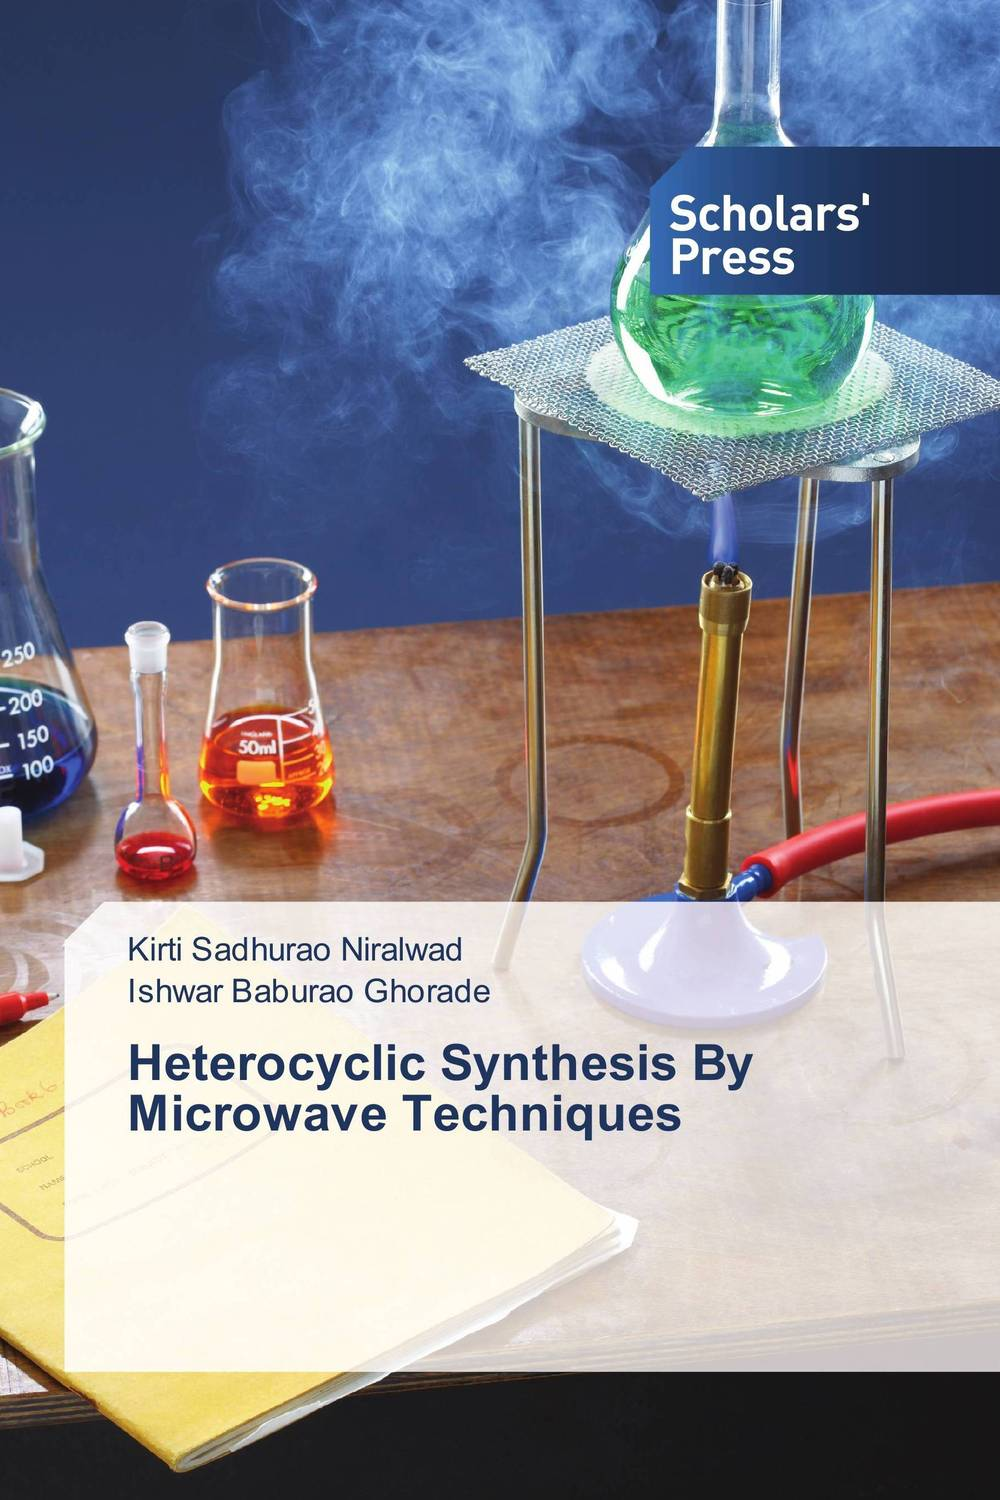 Heterocyclic Synthesis By Microwave Techniques heterocyclic synthesis by microwave techniques